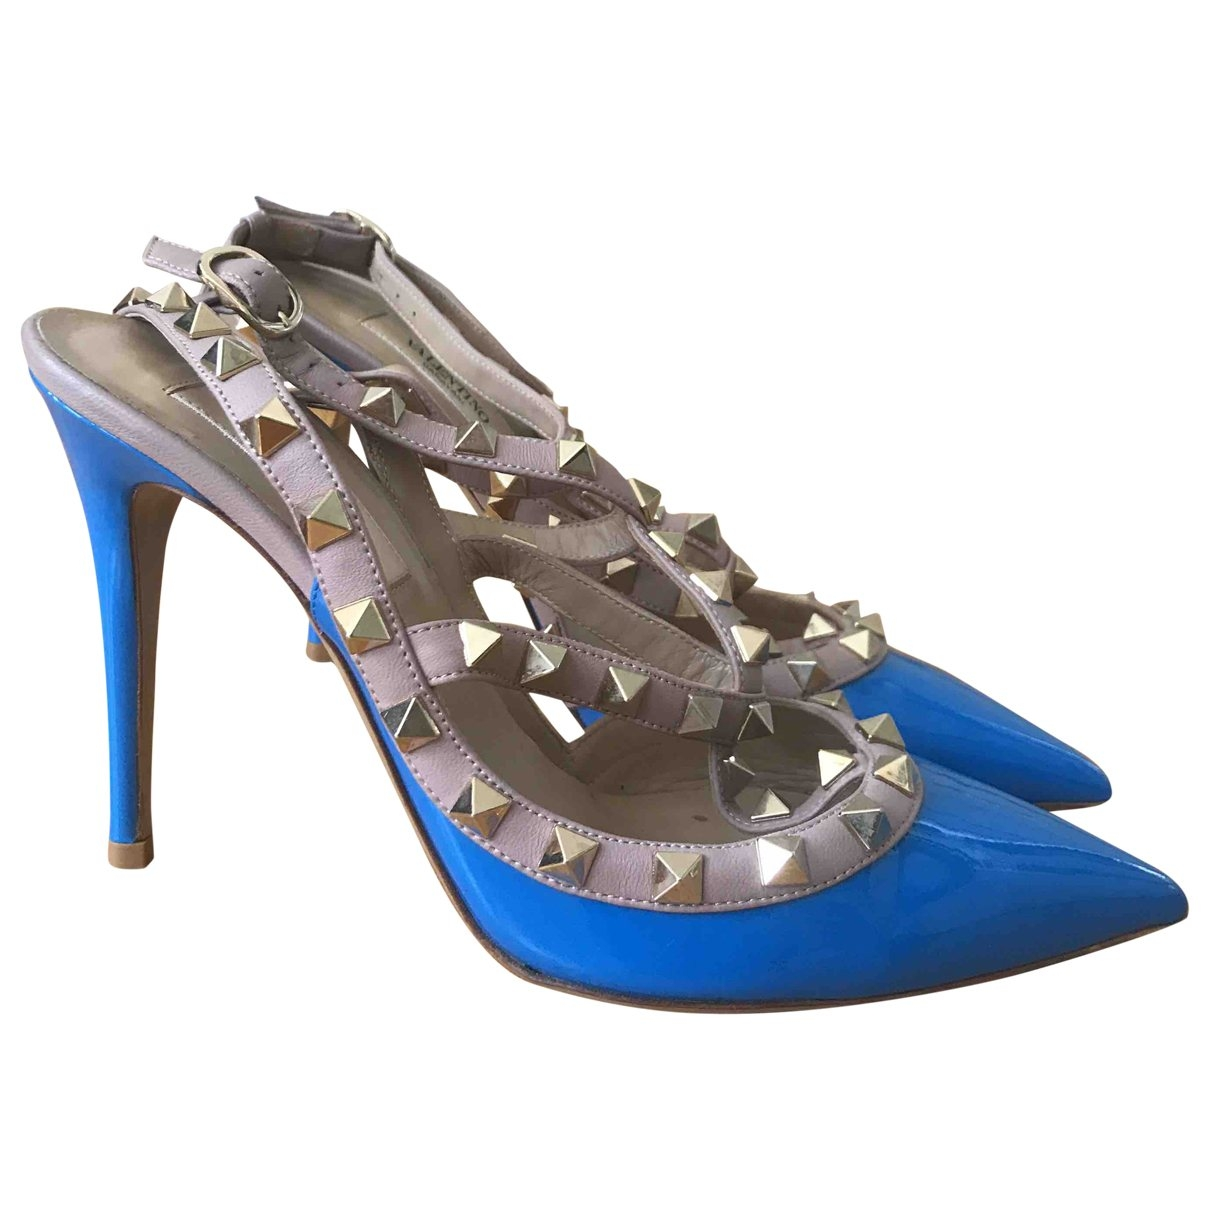 Valentino Garavani Rockstud Blue Patent leather Heels for Women 36 EU